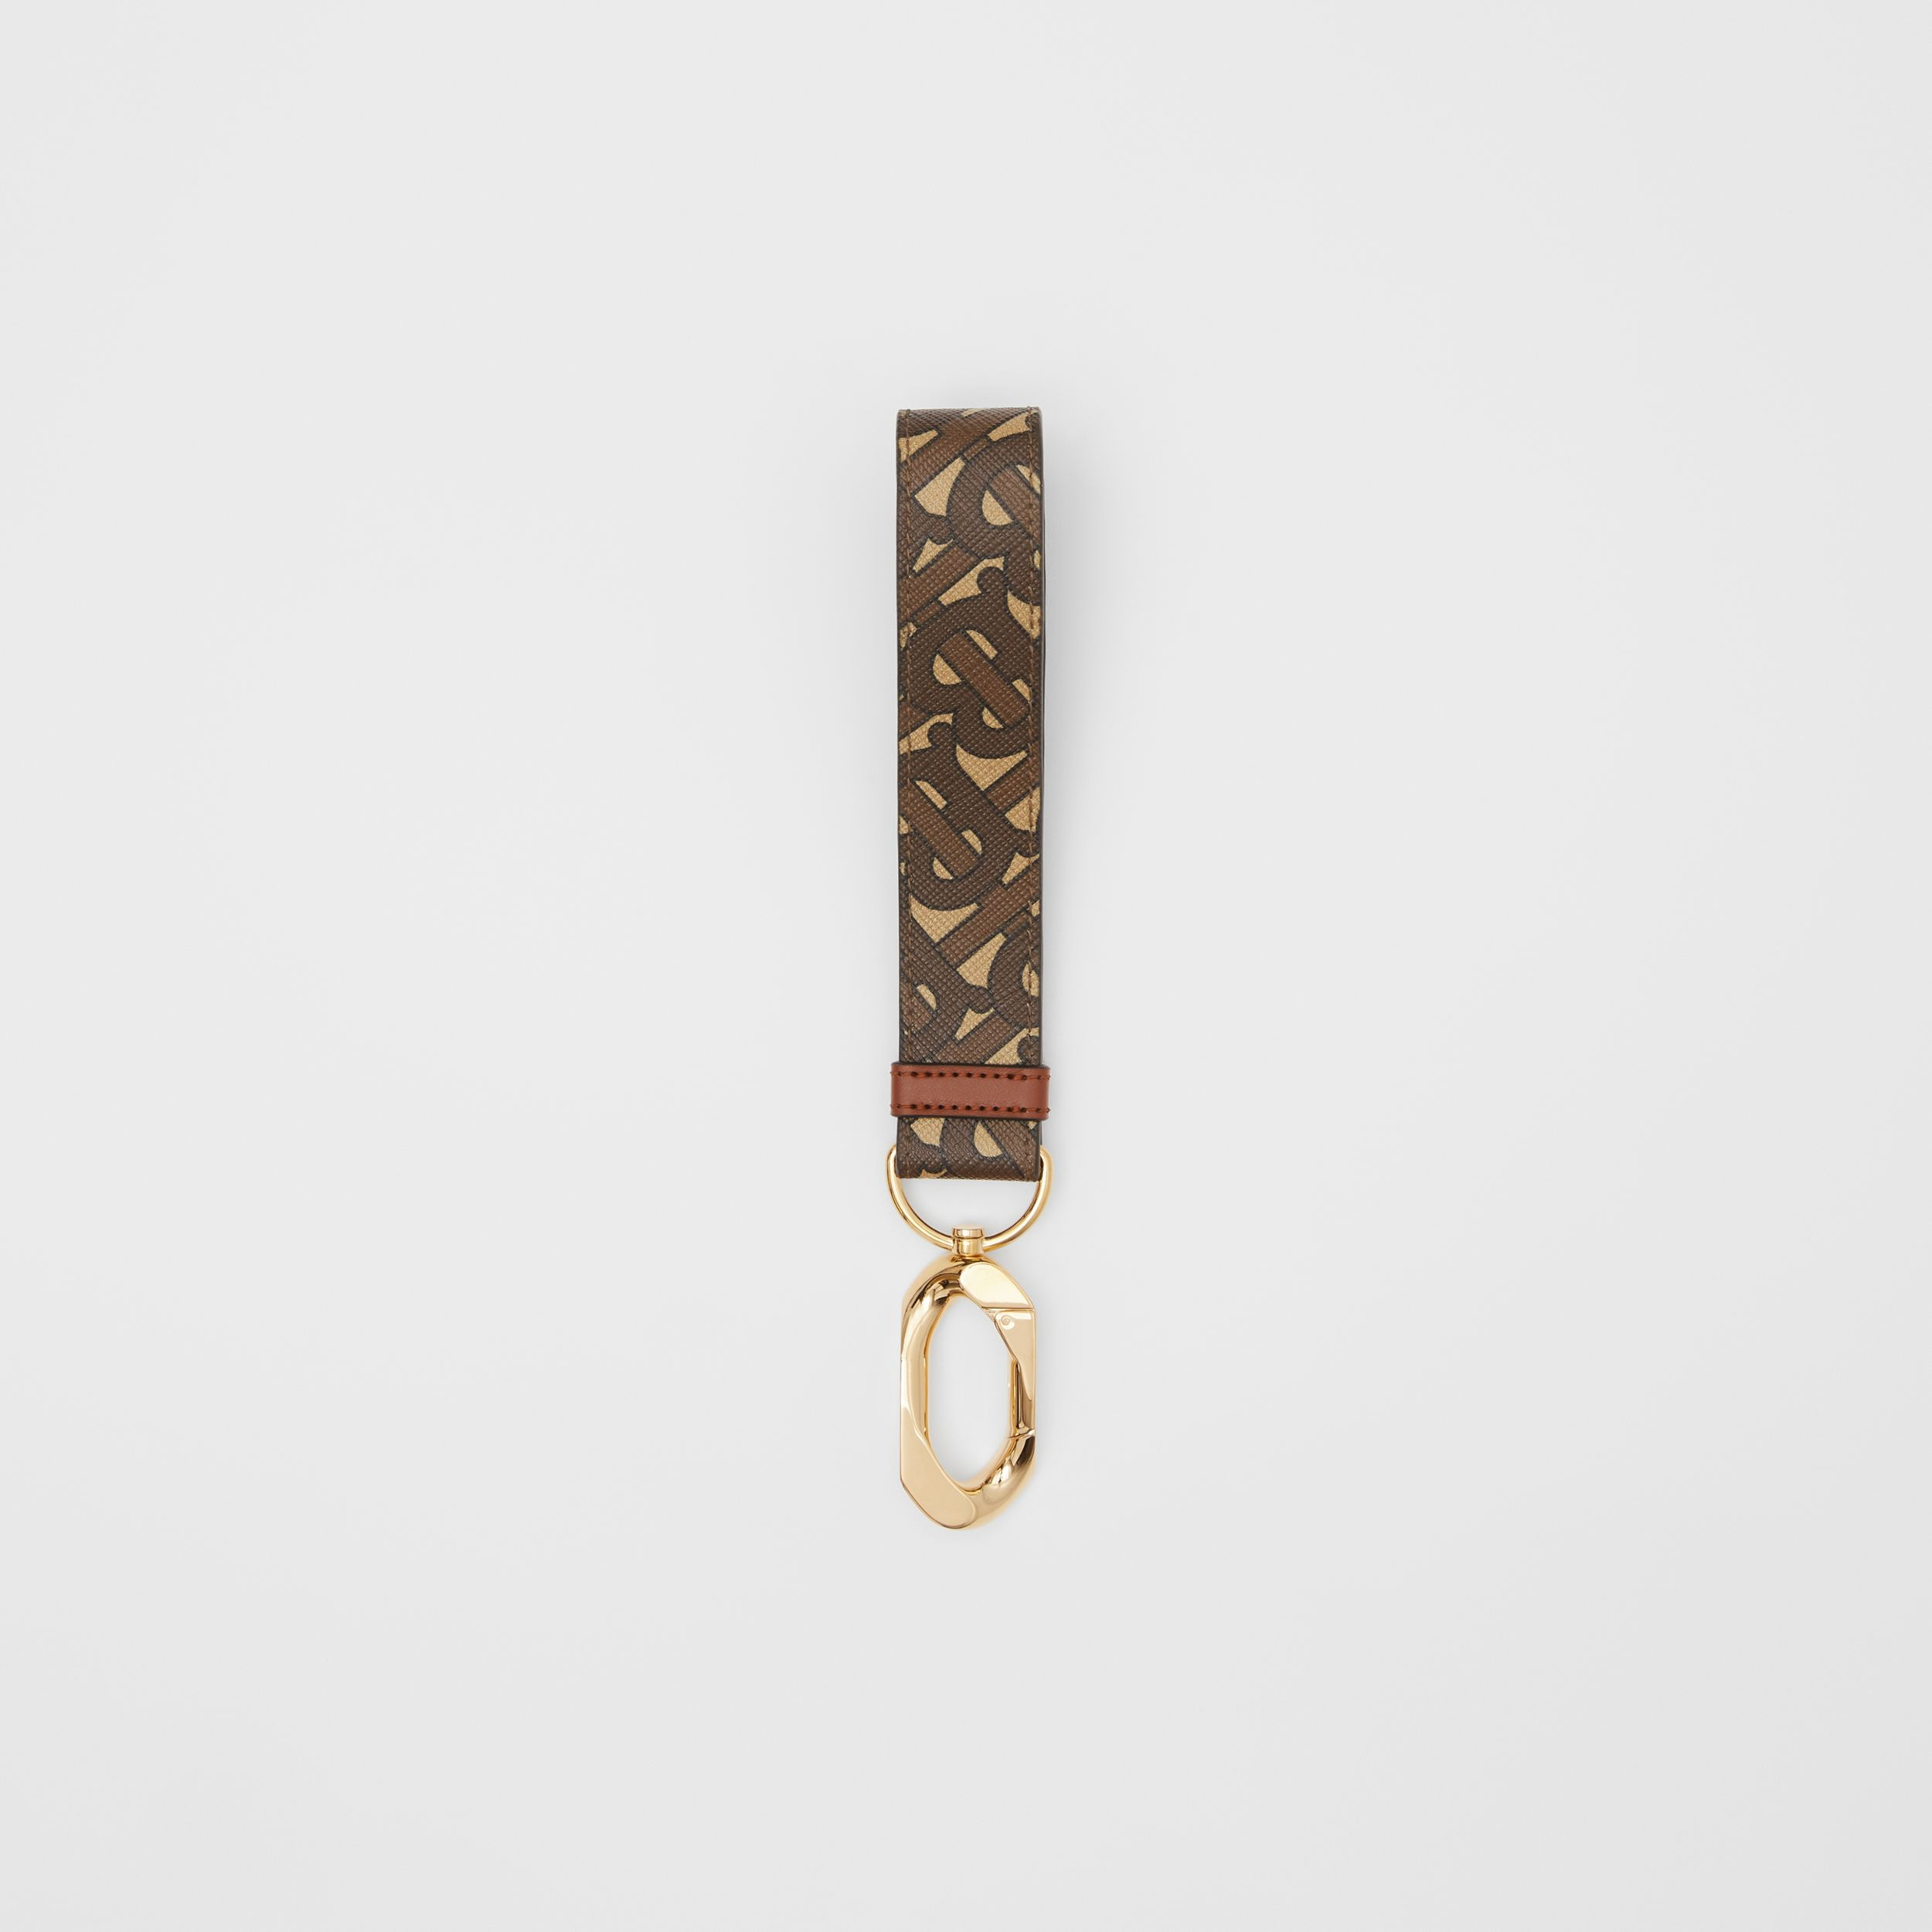 Monogram Print E-canvas Charm in Bridle Brown - Women | Burberry - 3